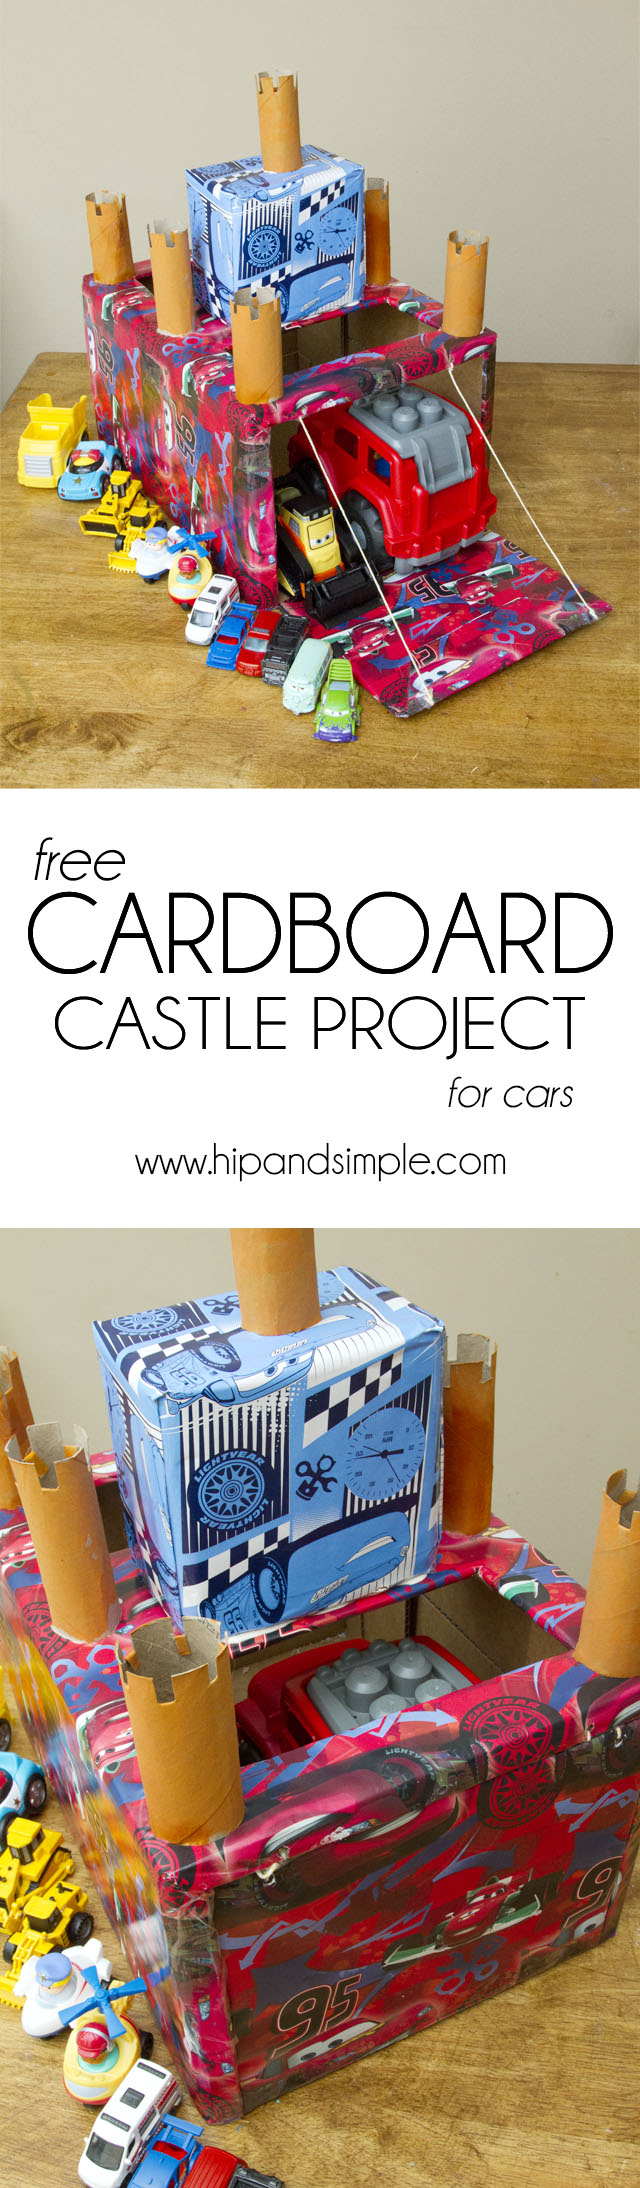 Free Cardboard Castle Project for Cars Final